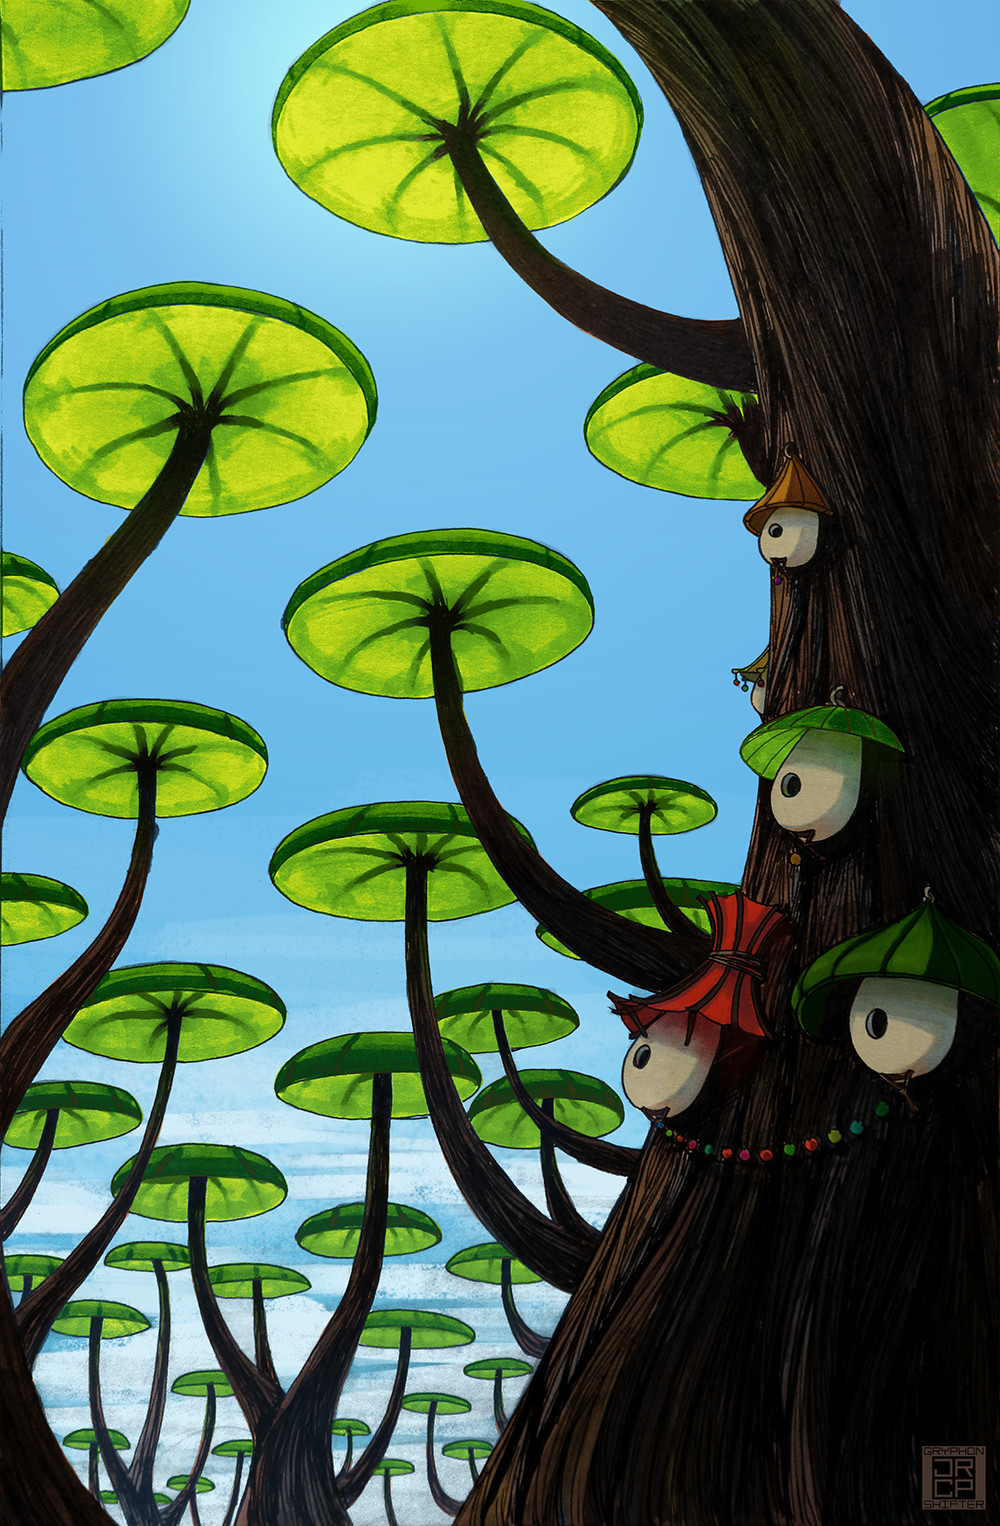 Cute houses on a lily pad tree. Colored in Photoshop.